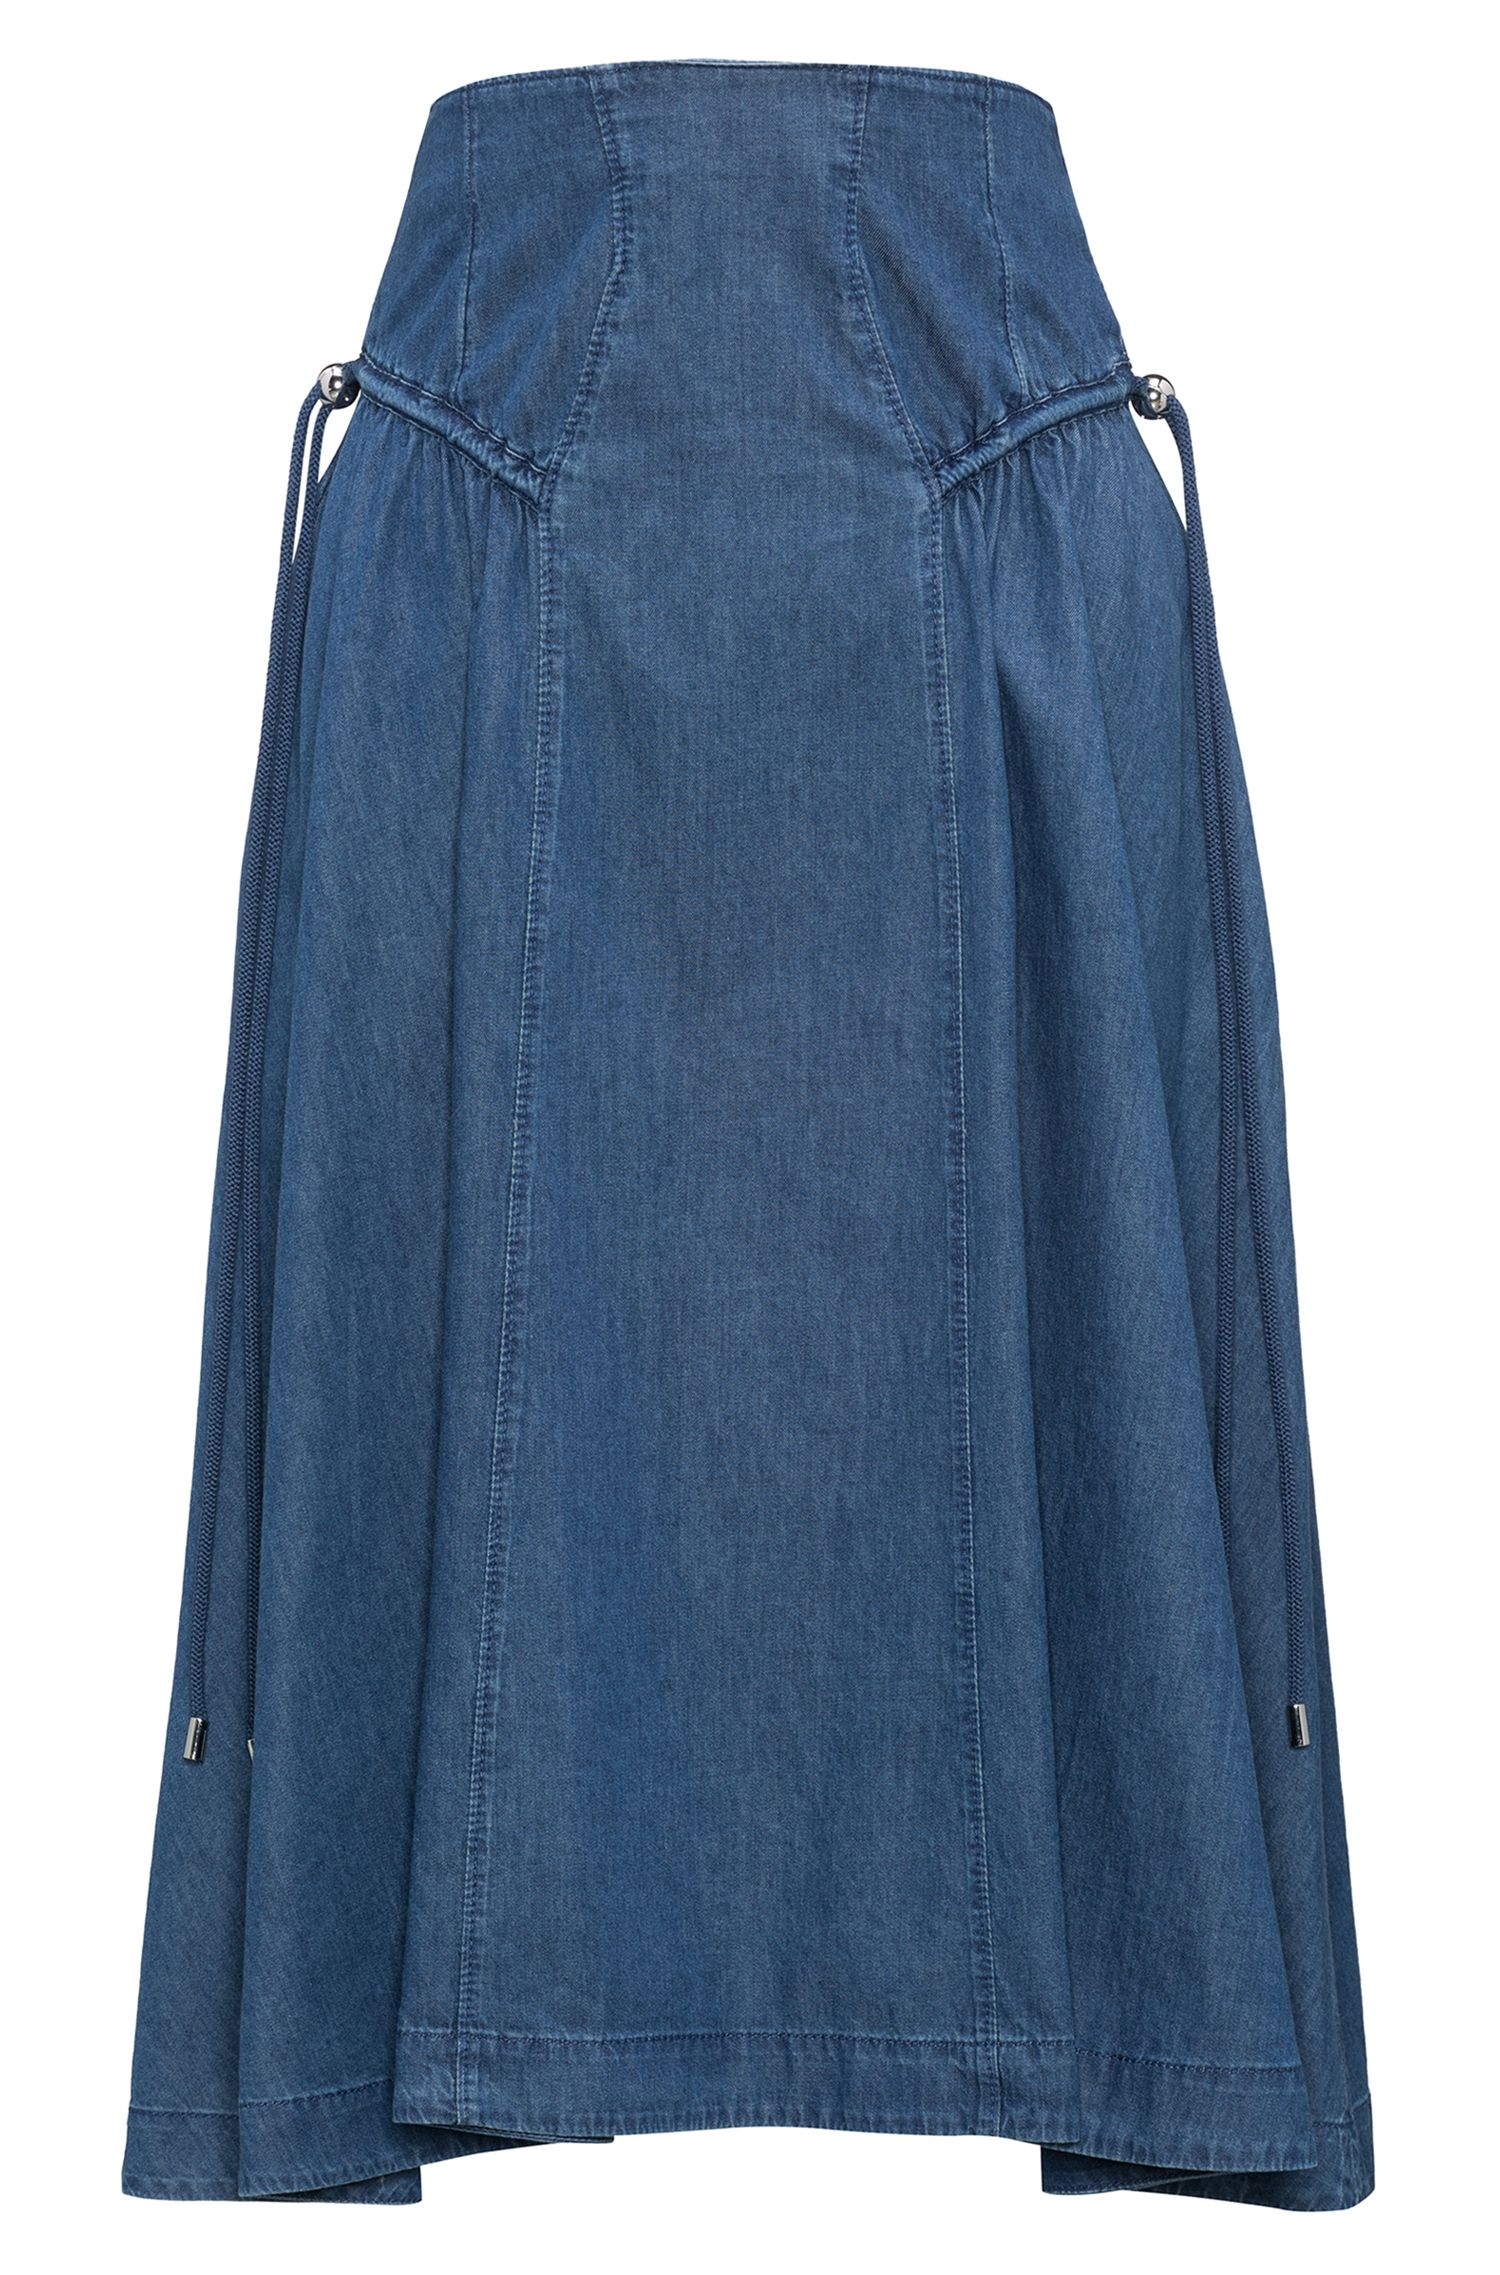 Washed denim A-line skirt with gathered details